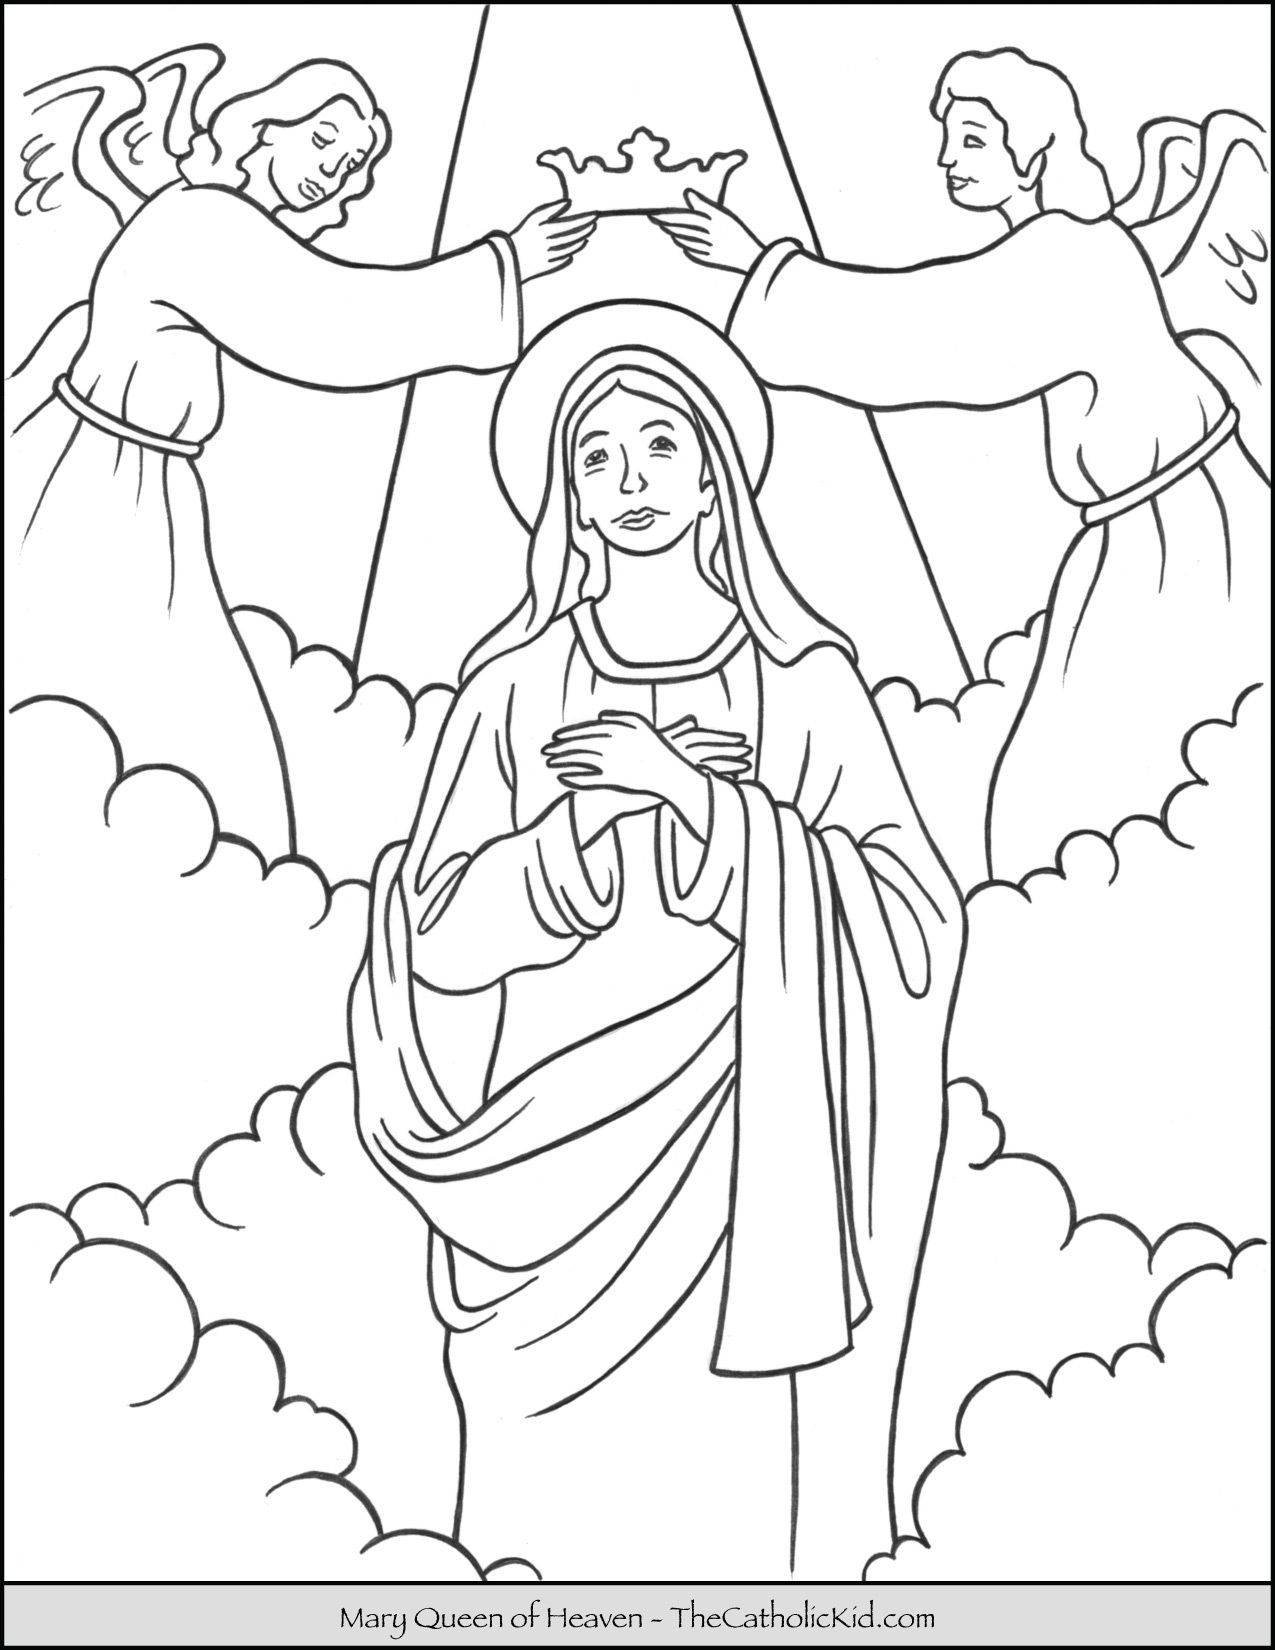 Mary Queen Of Heaven Coloring Page Thecatholickid Com Catholic Coloring Coloring Pages Mermaid Coloring Pages